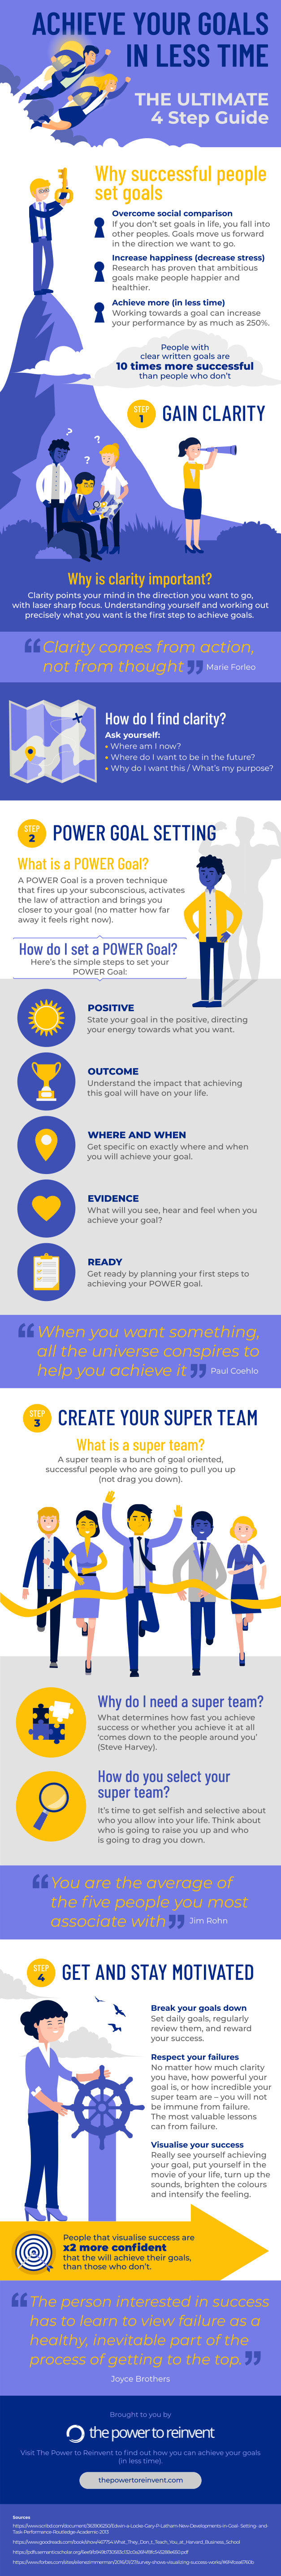 achieve your goals ultimate guide to goal setting infographic